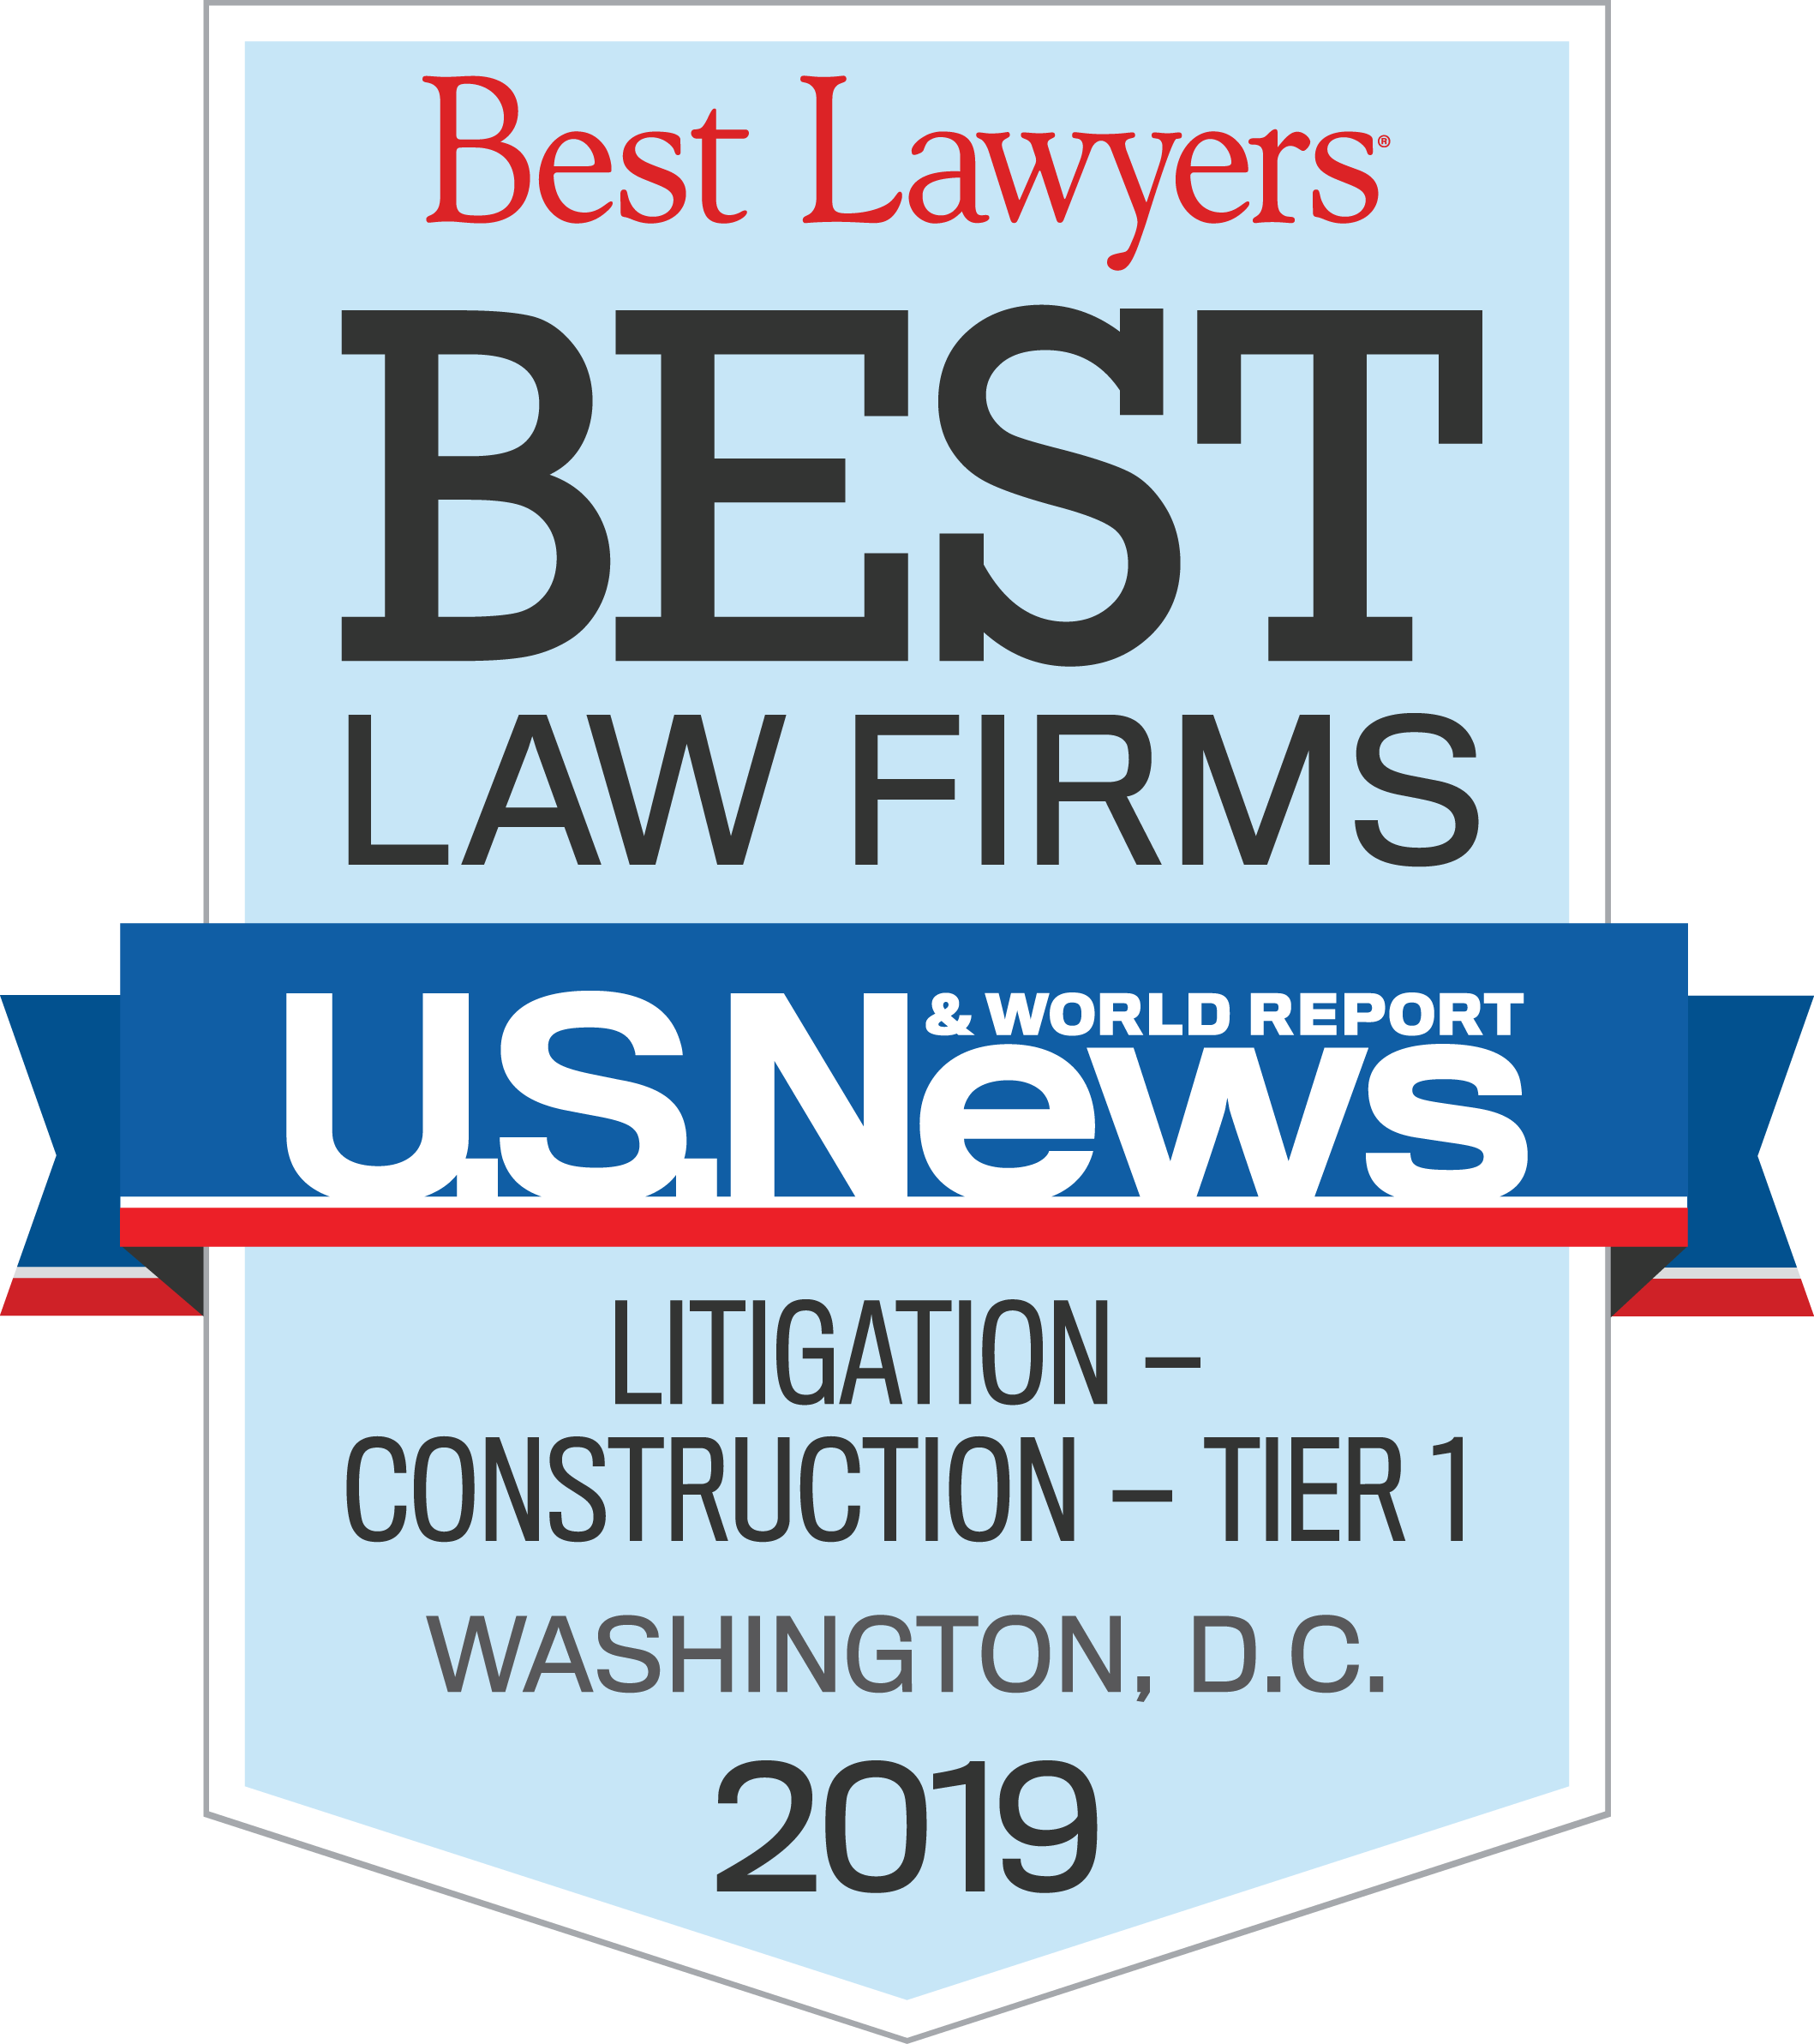 Best Law Firms.